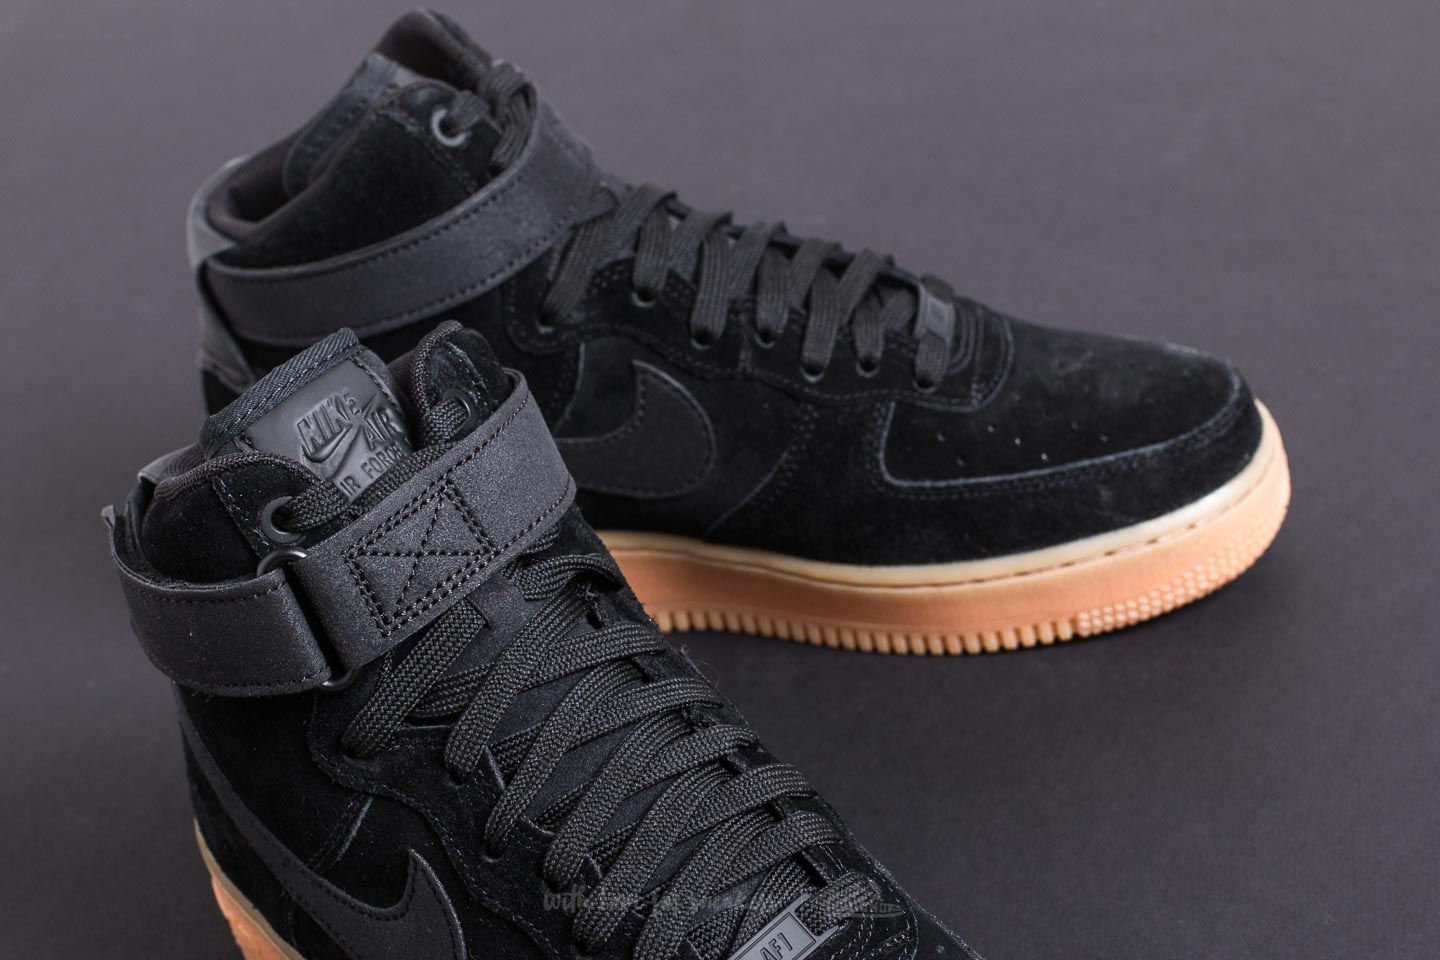 Nike Air Force 1 High '07 LV8 Suede Black/ Black-Gum Med